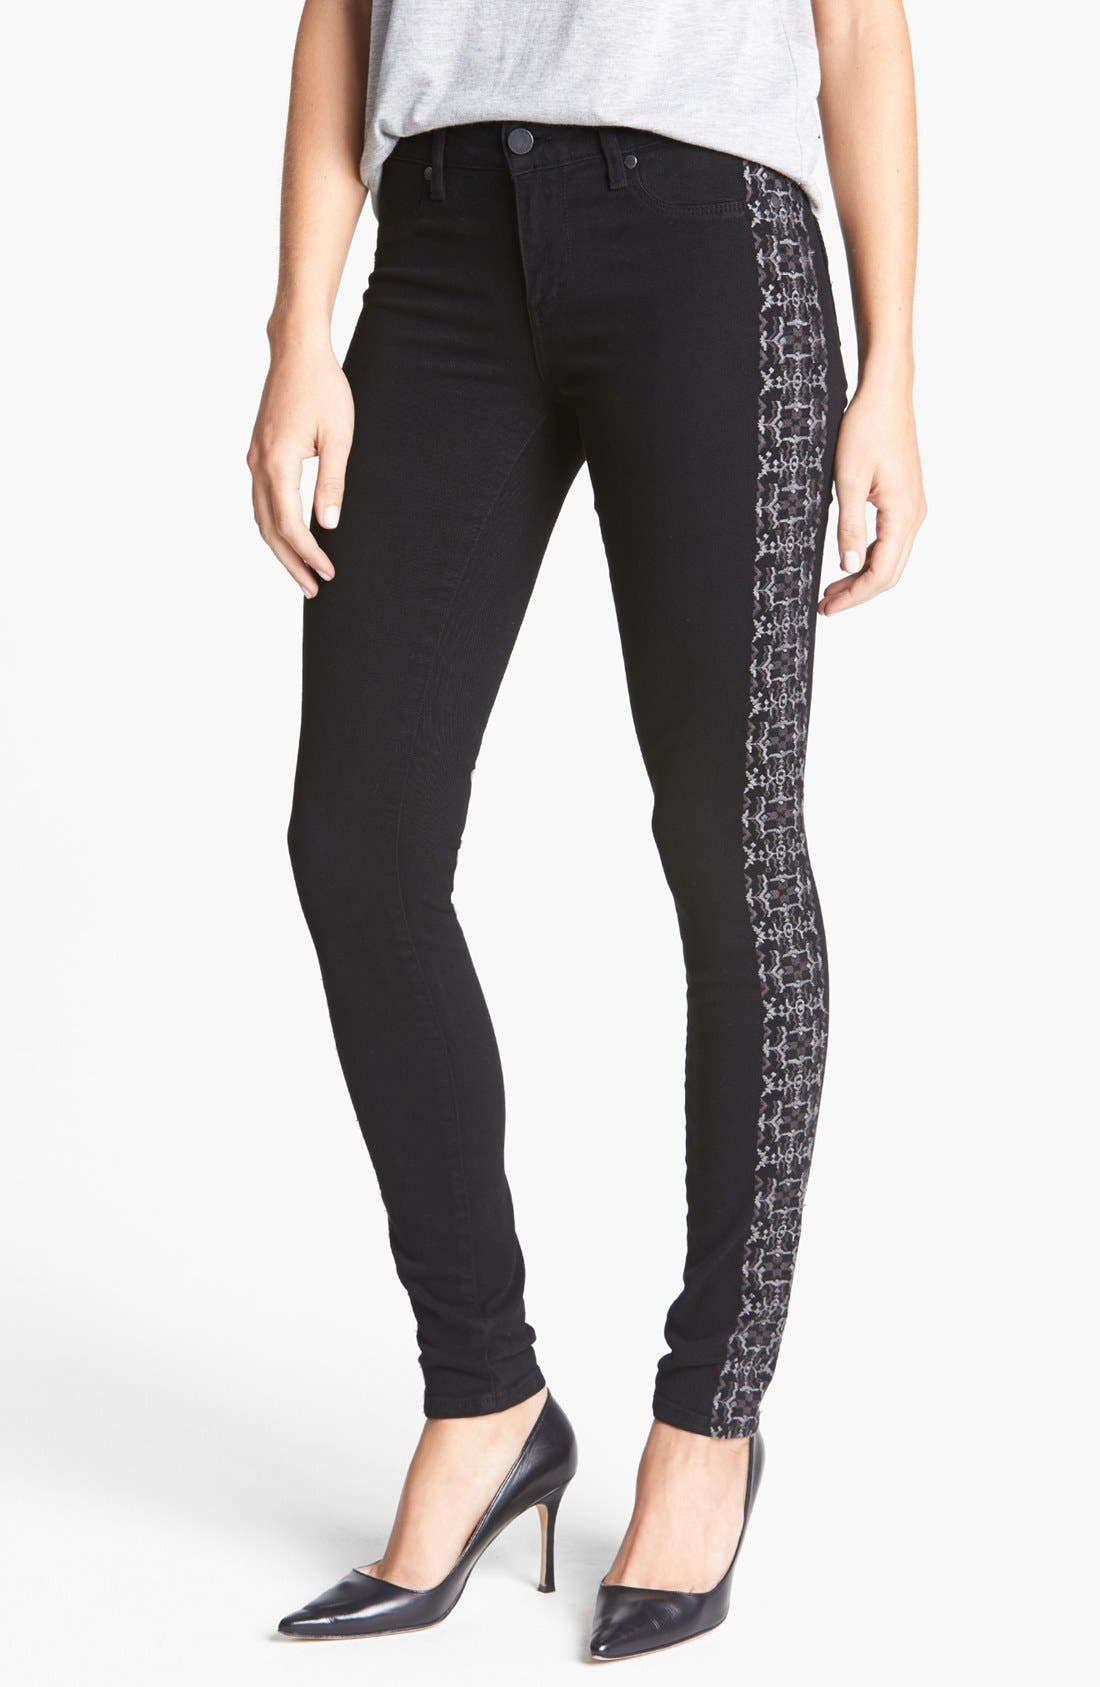 Main Image - Paige Denim 'Verdugo' Embroidered Ultra Skinny Jeans (Caliente Embroidery)